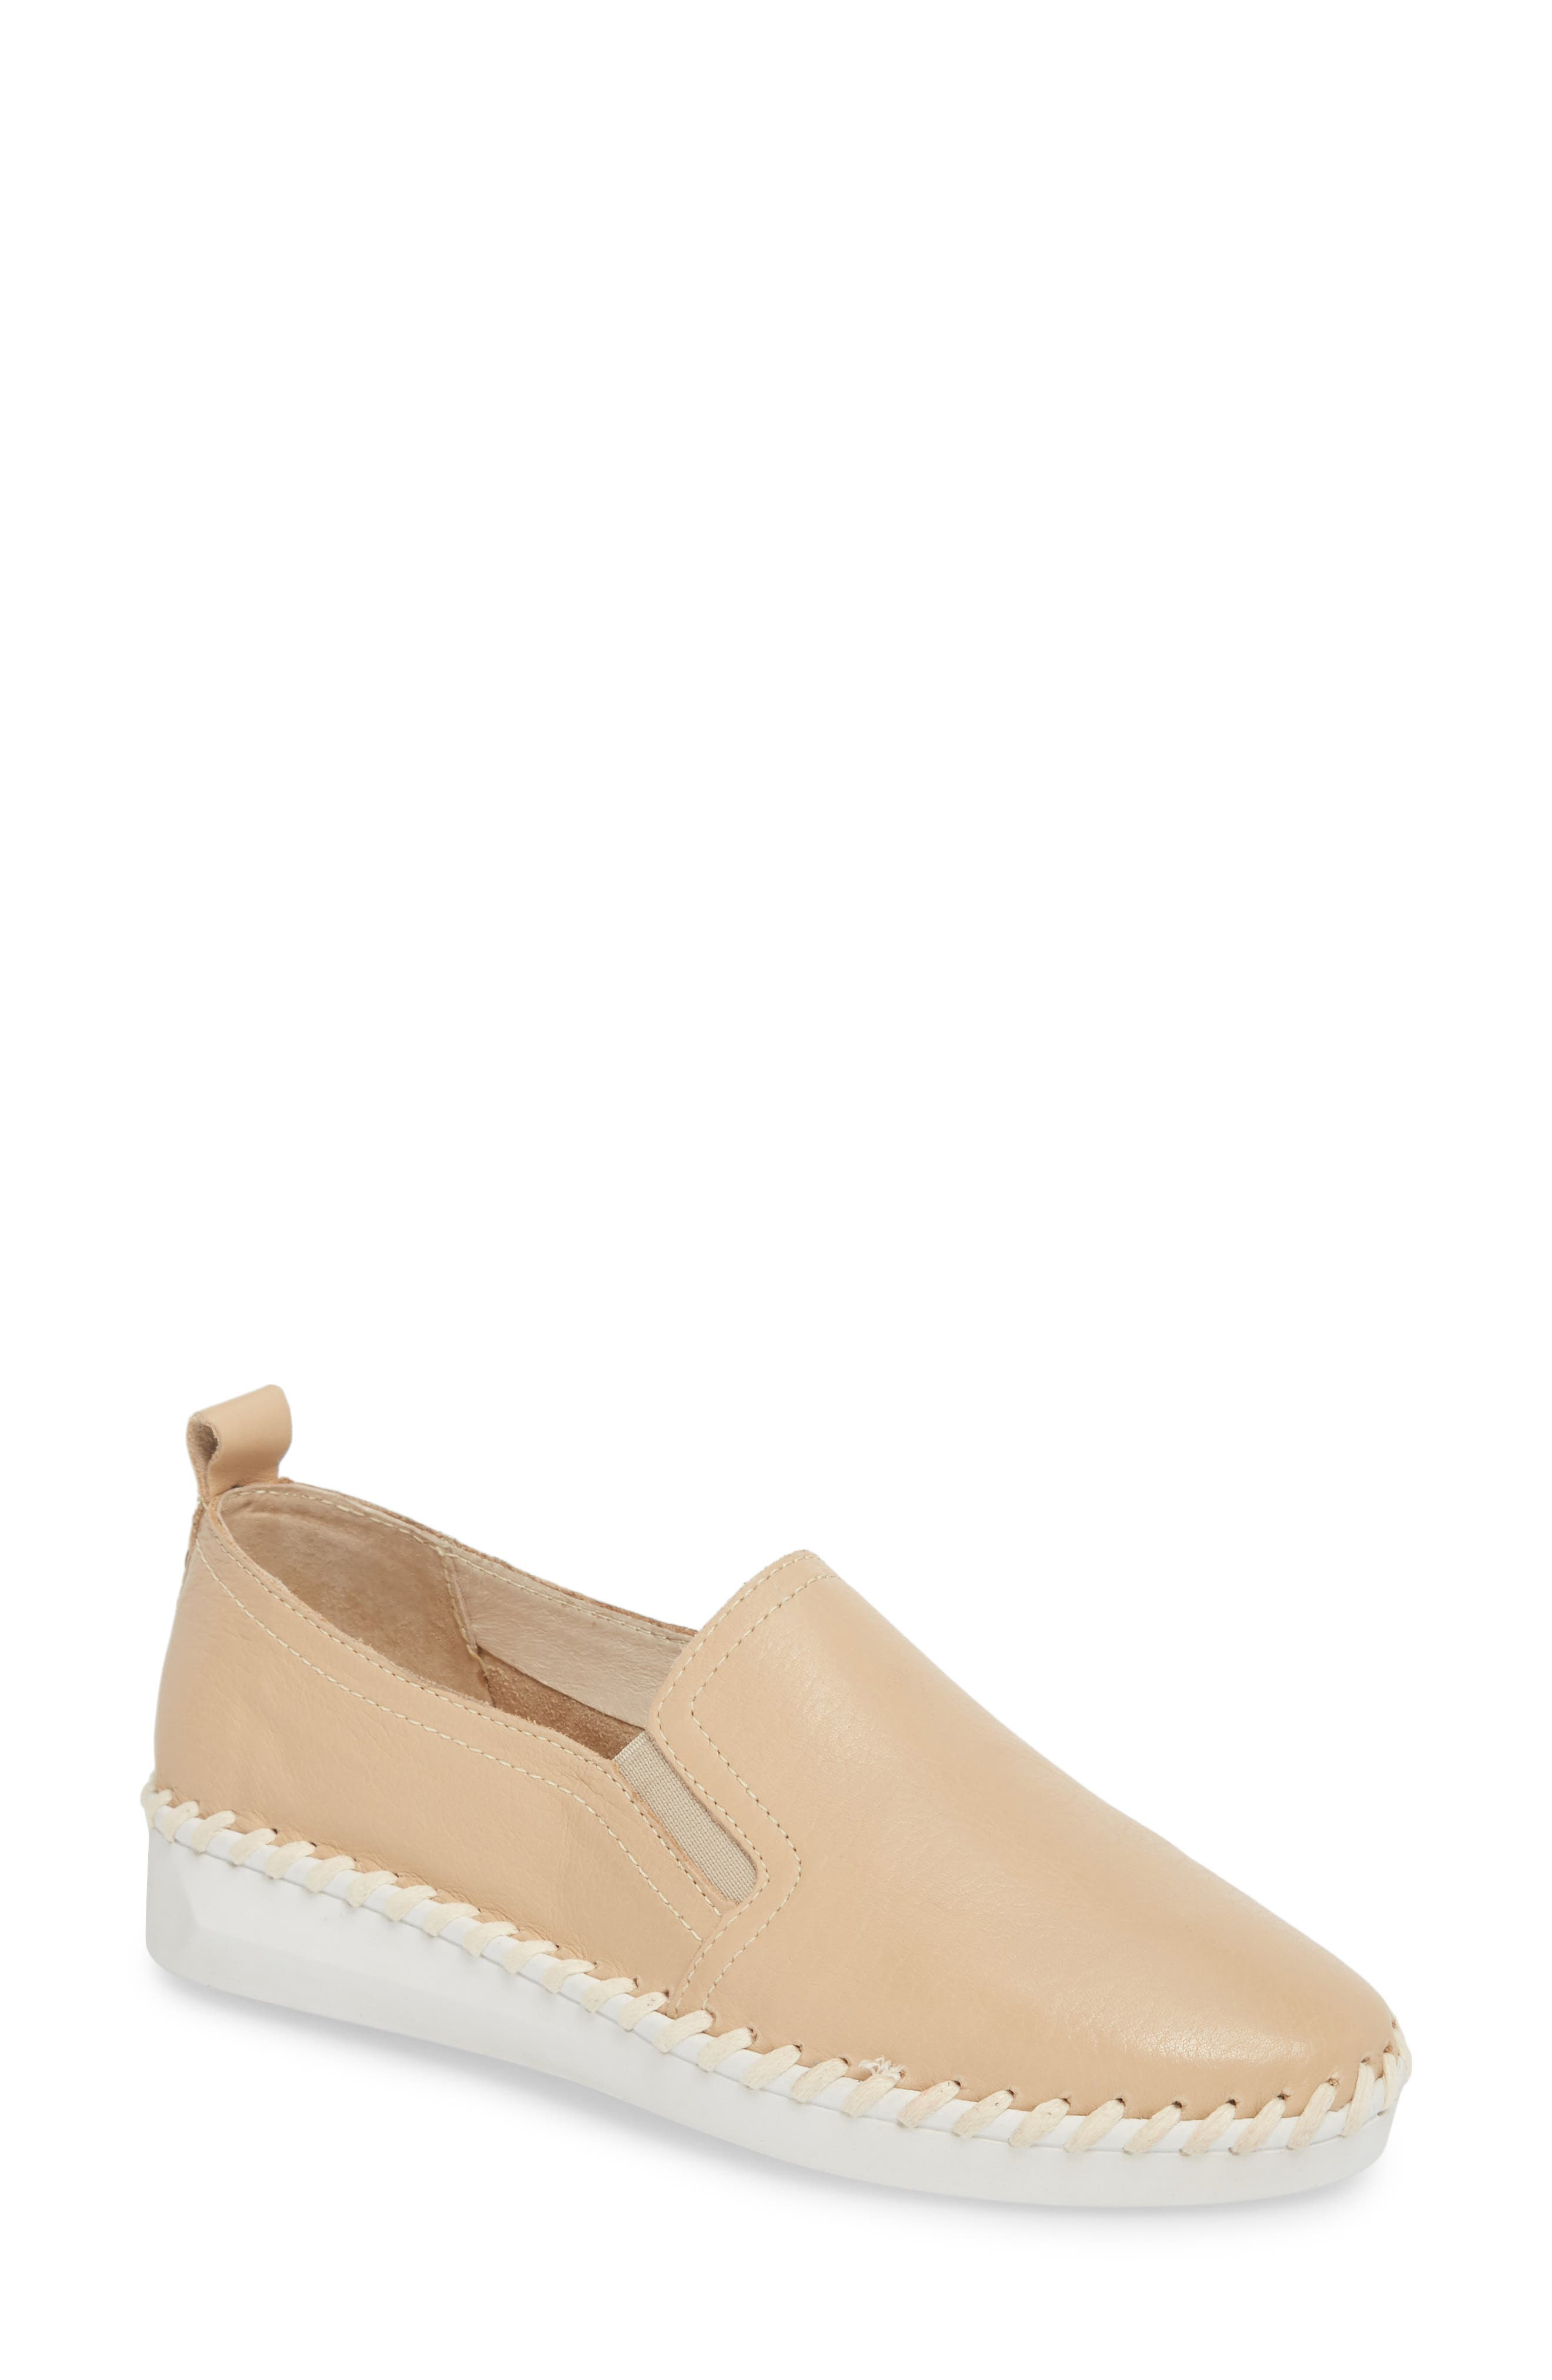 TW85 Slip-On Sneaker,                             Main thumbnail 1, color,                             NUDE LEATHER